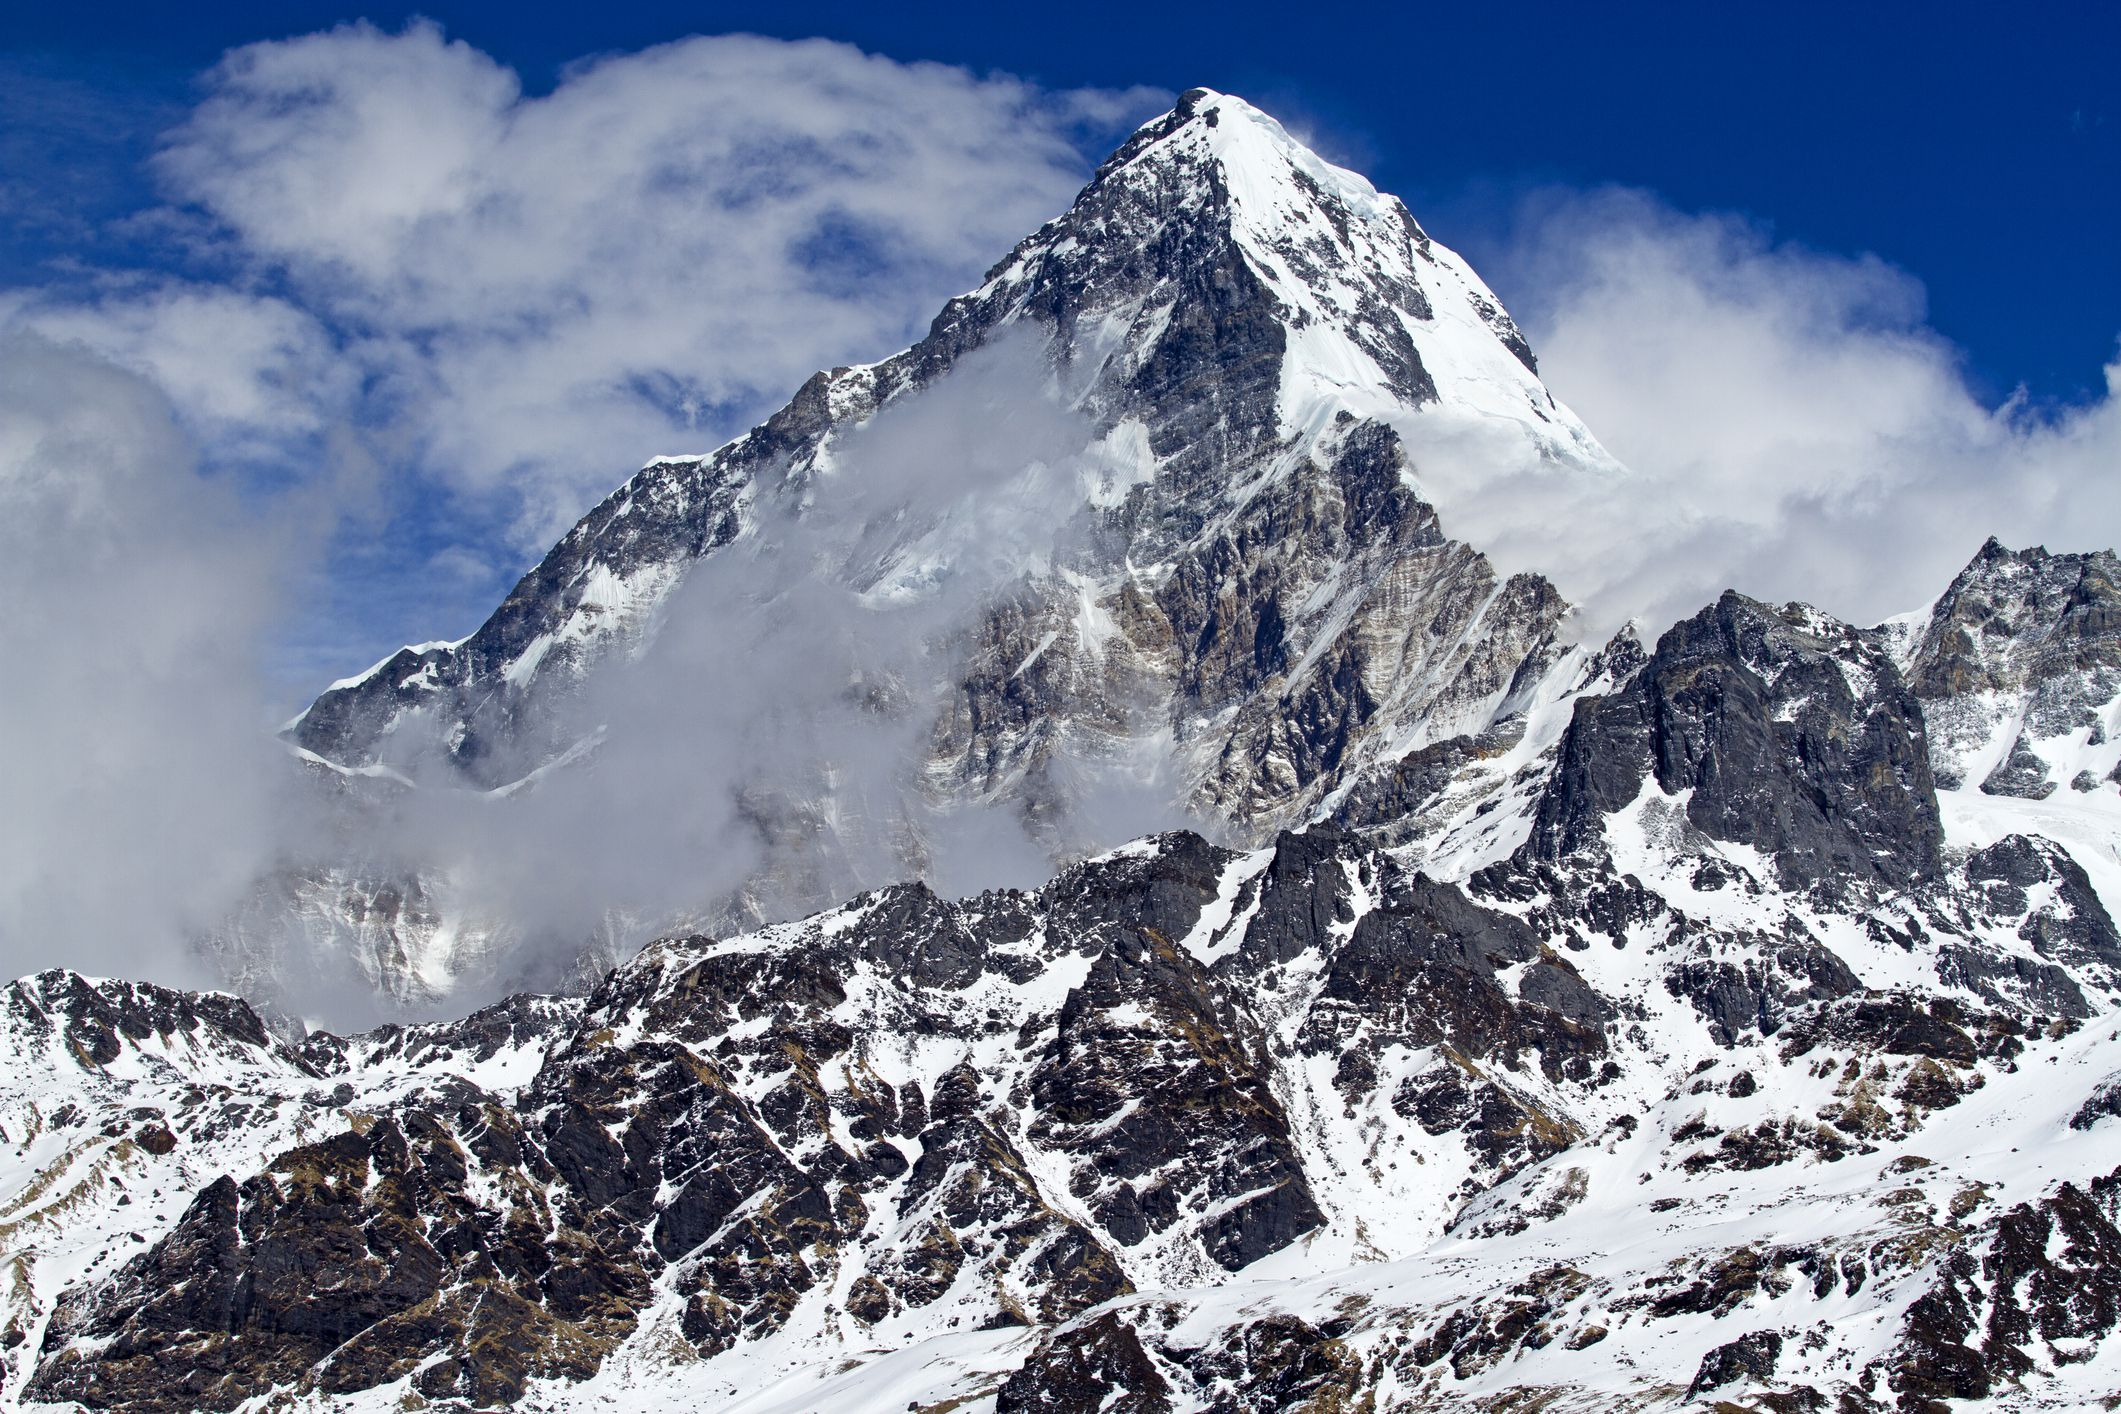 Annapurna: the 10th Highest Mountain in the World